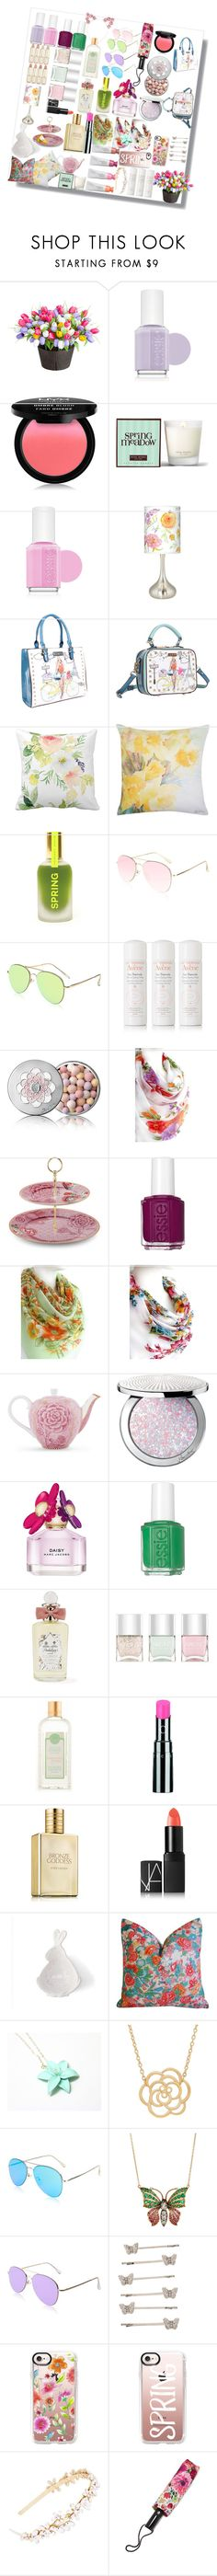 """All Things Spring"" by rolivian ❤ liked on Polyvore featuring Improvements, Essie, NYX, Henri Bendel, Giclee Glow, Nicole Lee, ULTA, M&Co, Dasein and Avène"